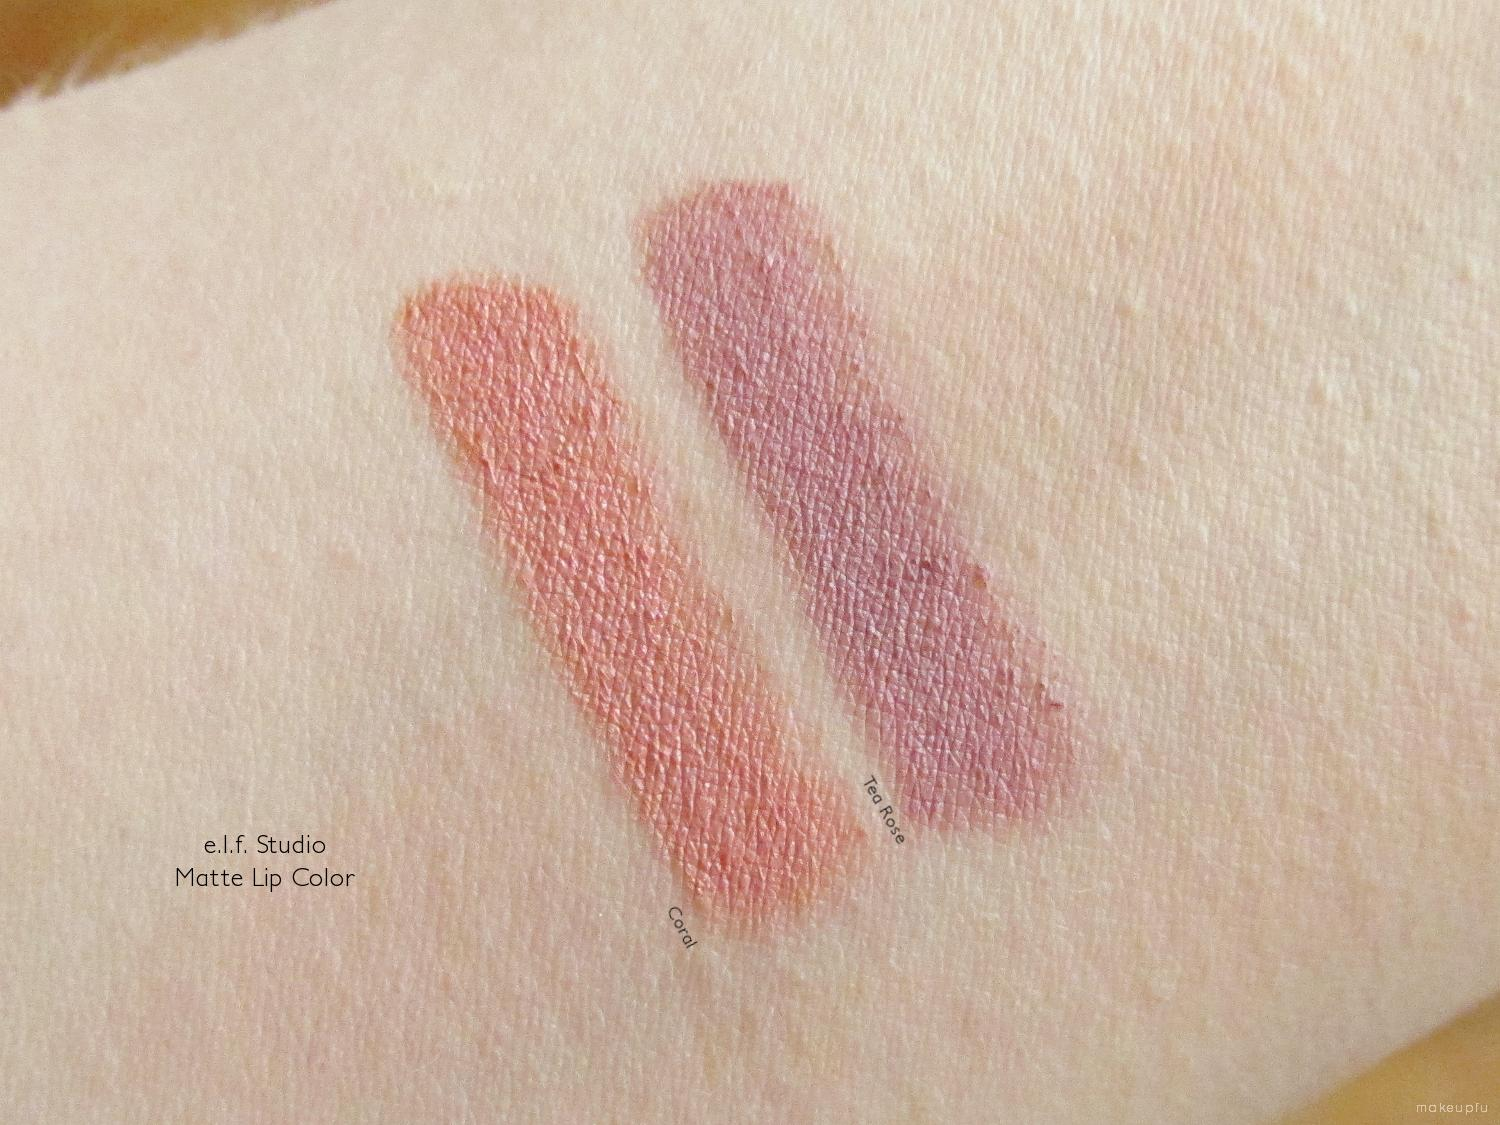 Swatches of e.l.f. Studio Matte Lip Color in Coral and Tea Rose